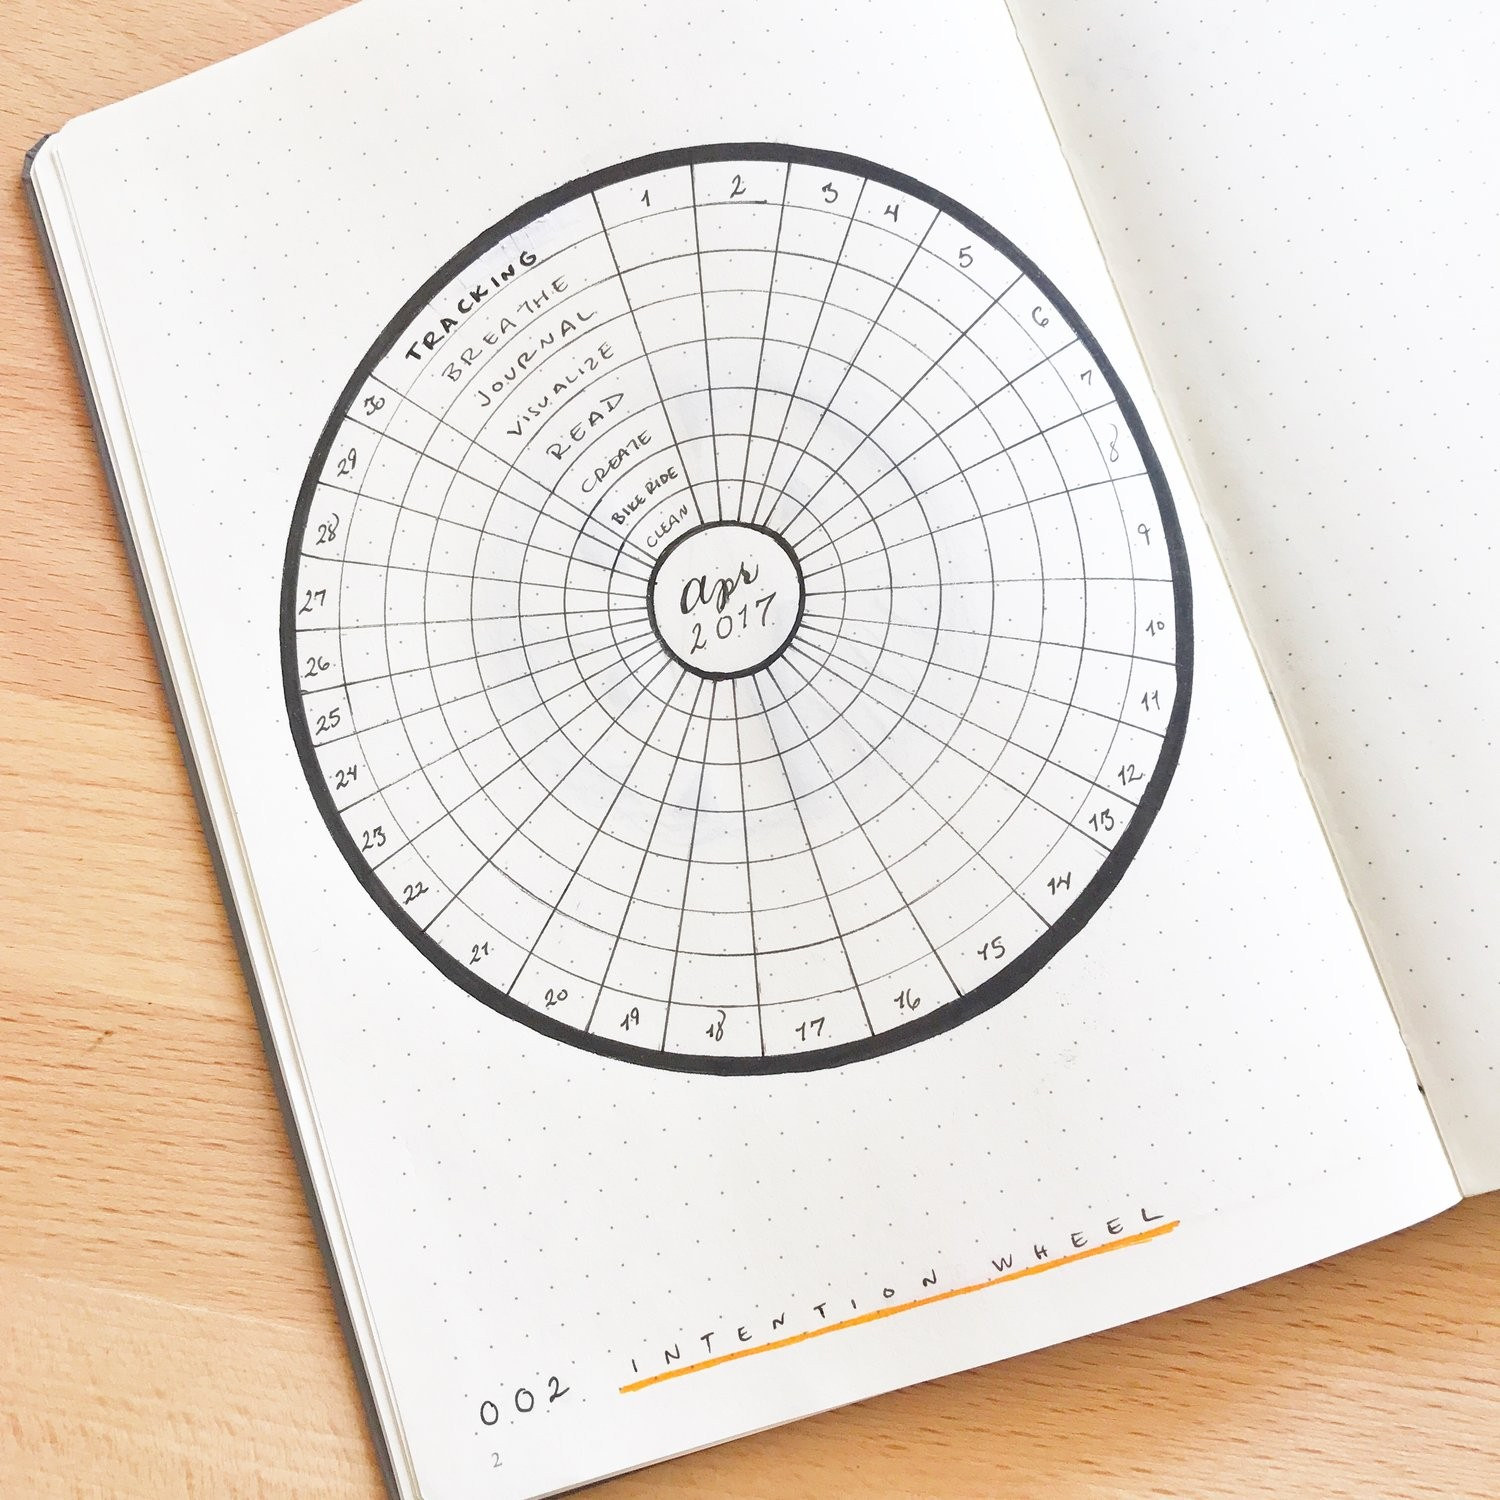 March Reading Month Calendar Activities Más Recientemente Liberado the Intention Wheel A New Kind Of Tracker for Your Bullet Journal Of March Reading Month Calendar Activities Más Caliente Calendar Of events